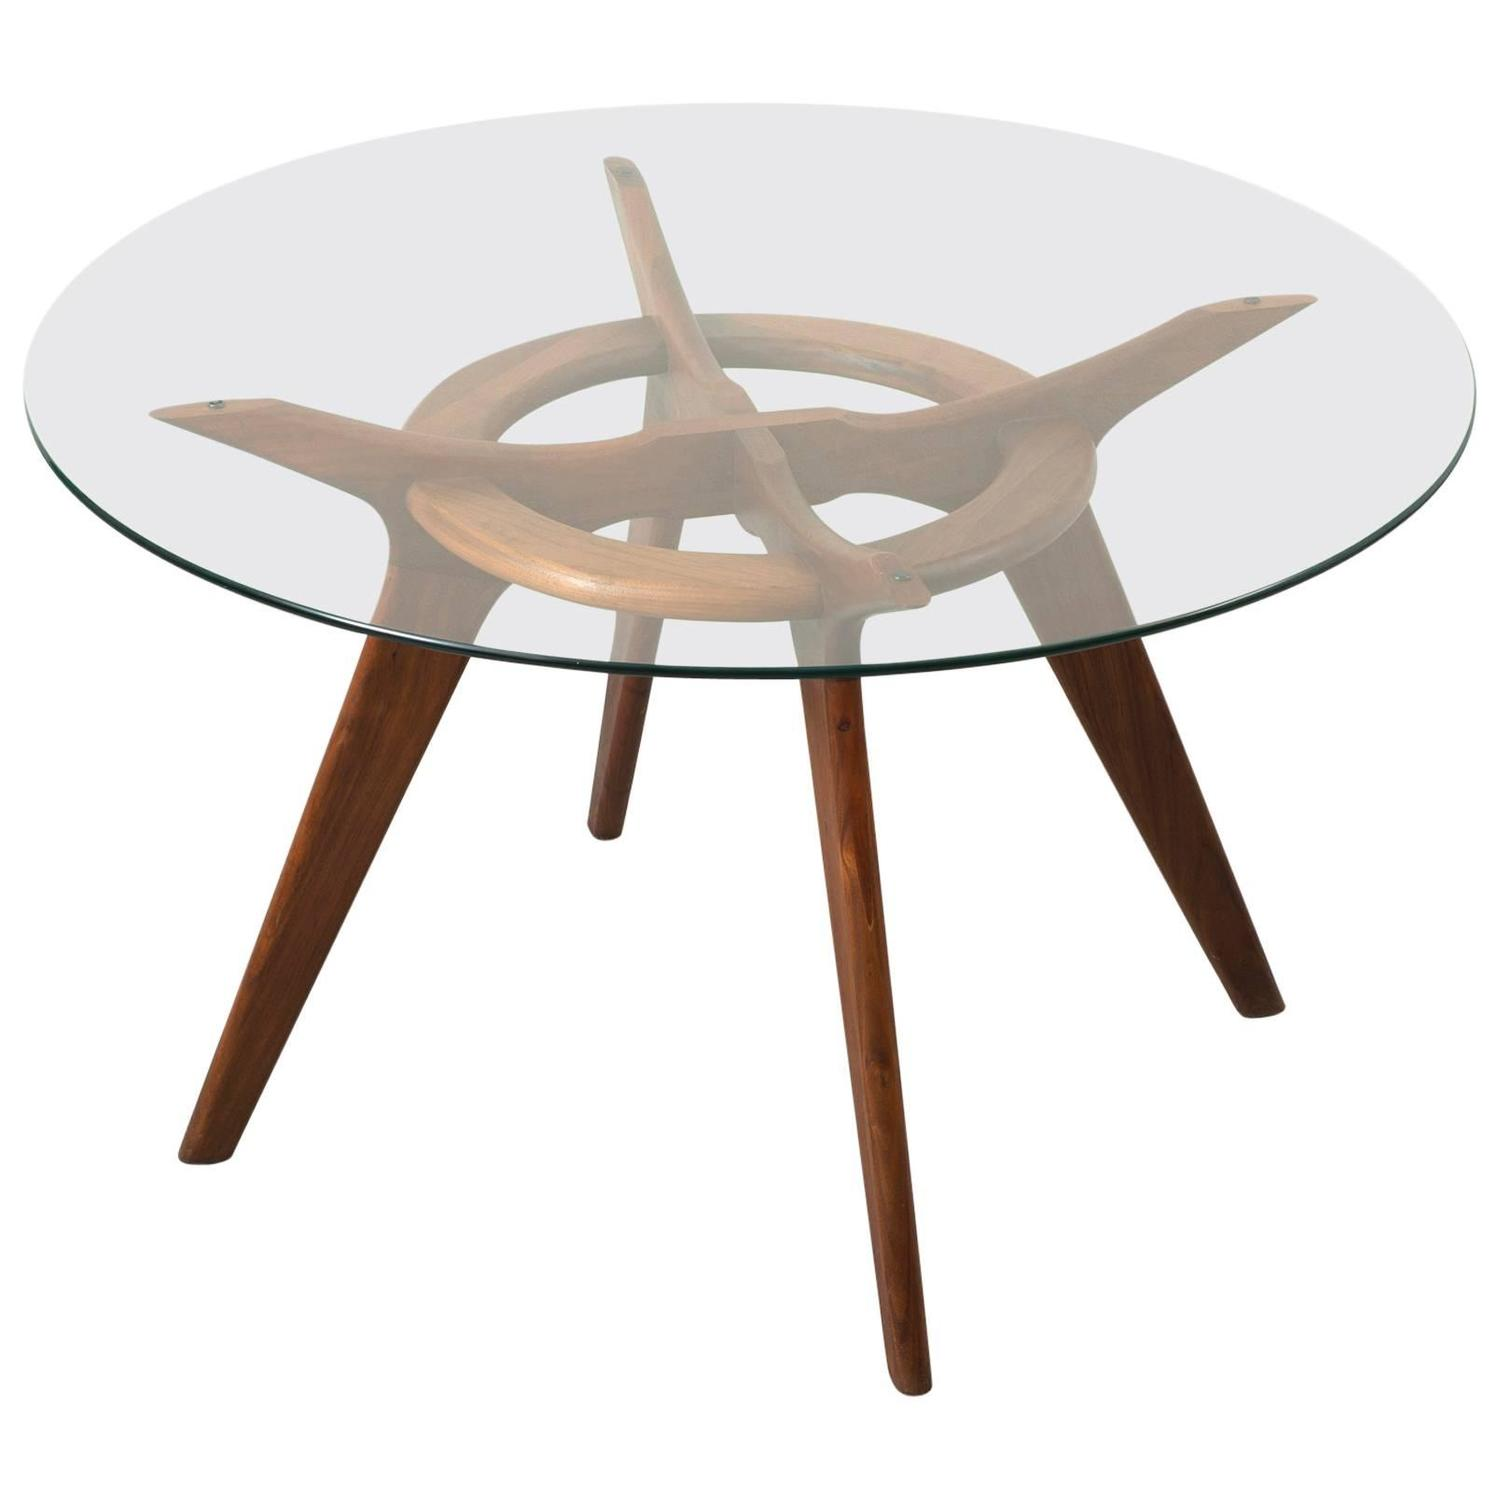 Elegant walnut and glass dining table by adrian pearsall for Fancy glass dining table